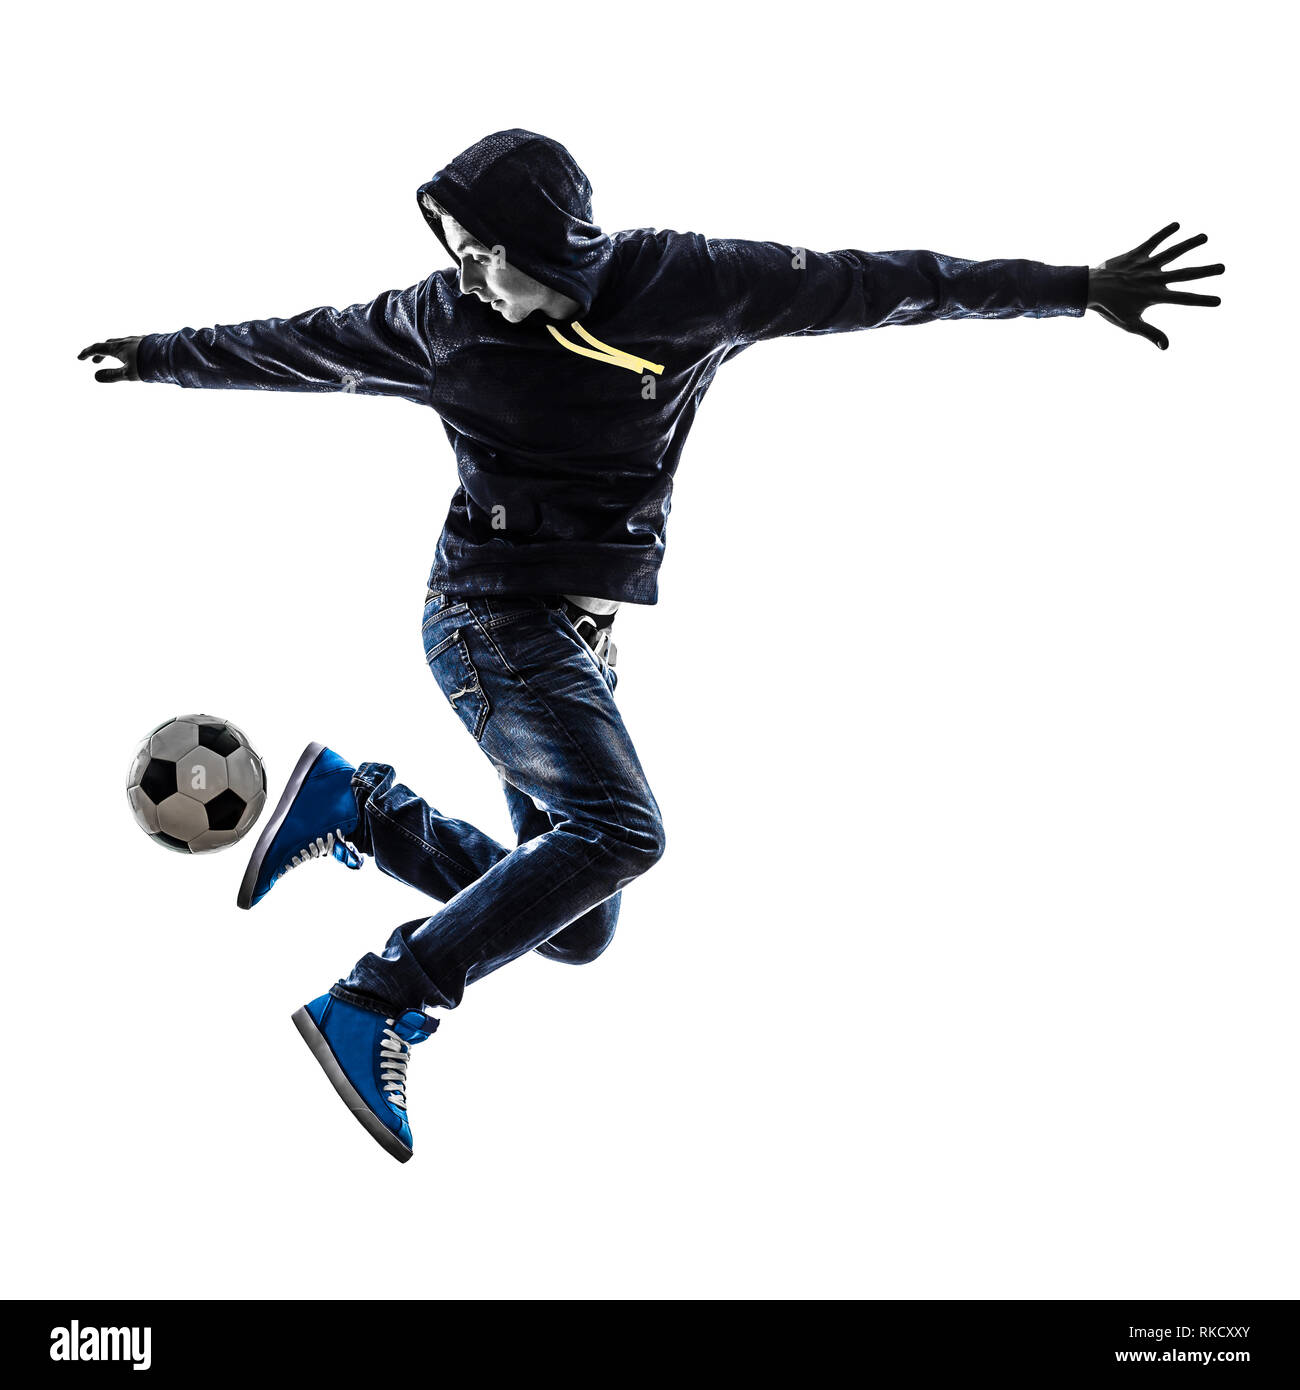 one  young man soccer freestyler player in silhouette on white background - Stock Image